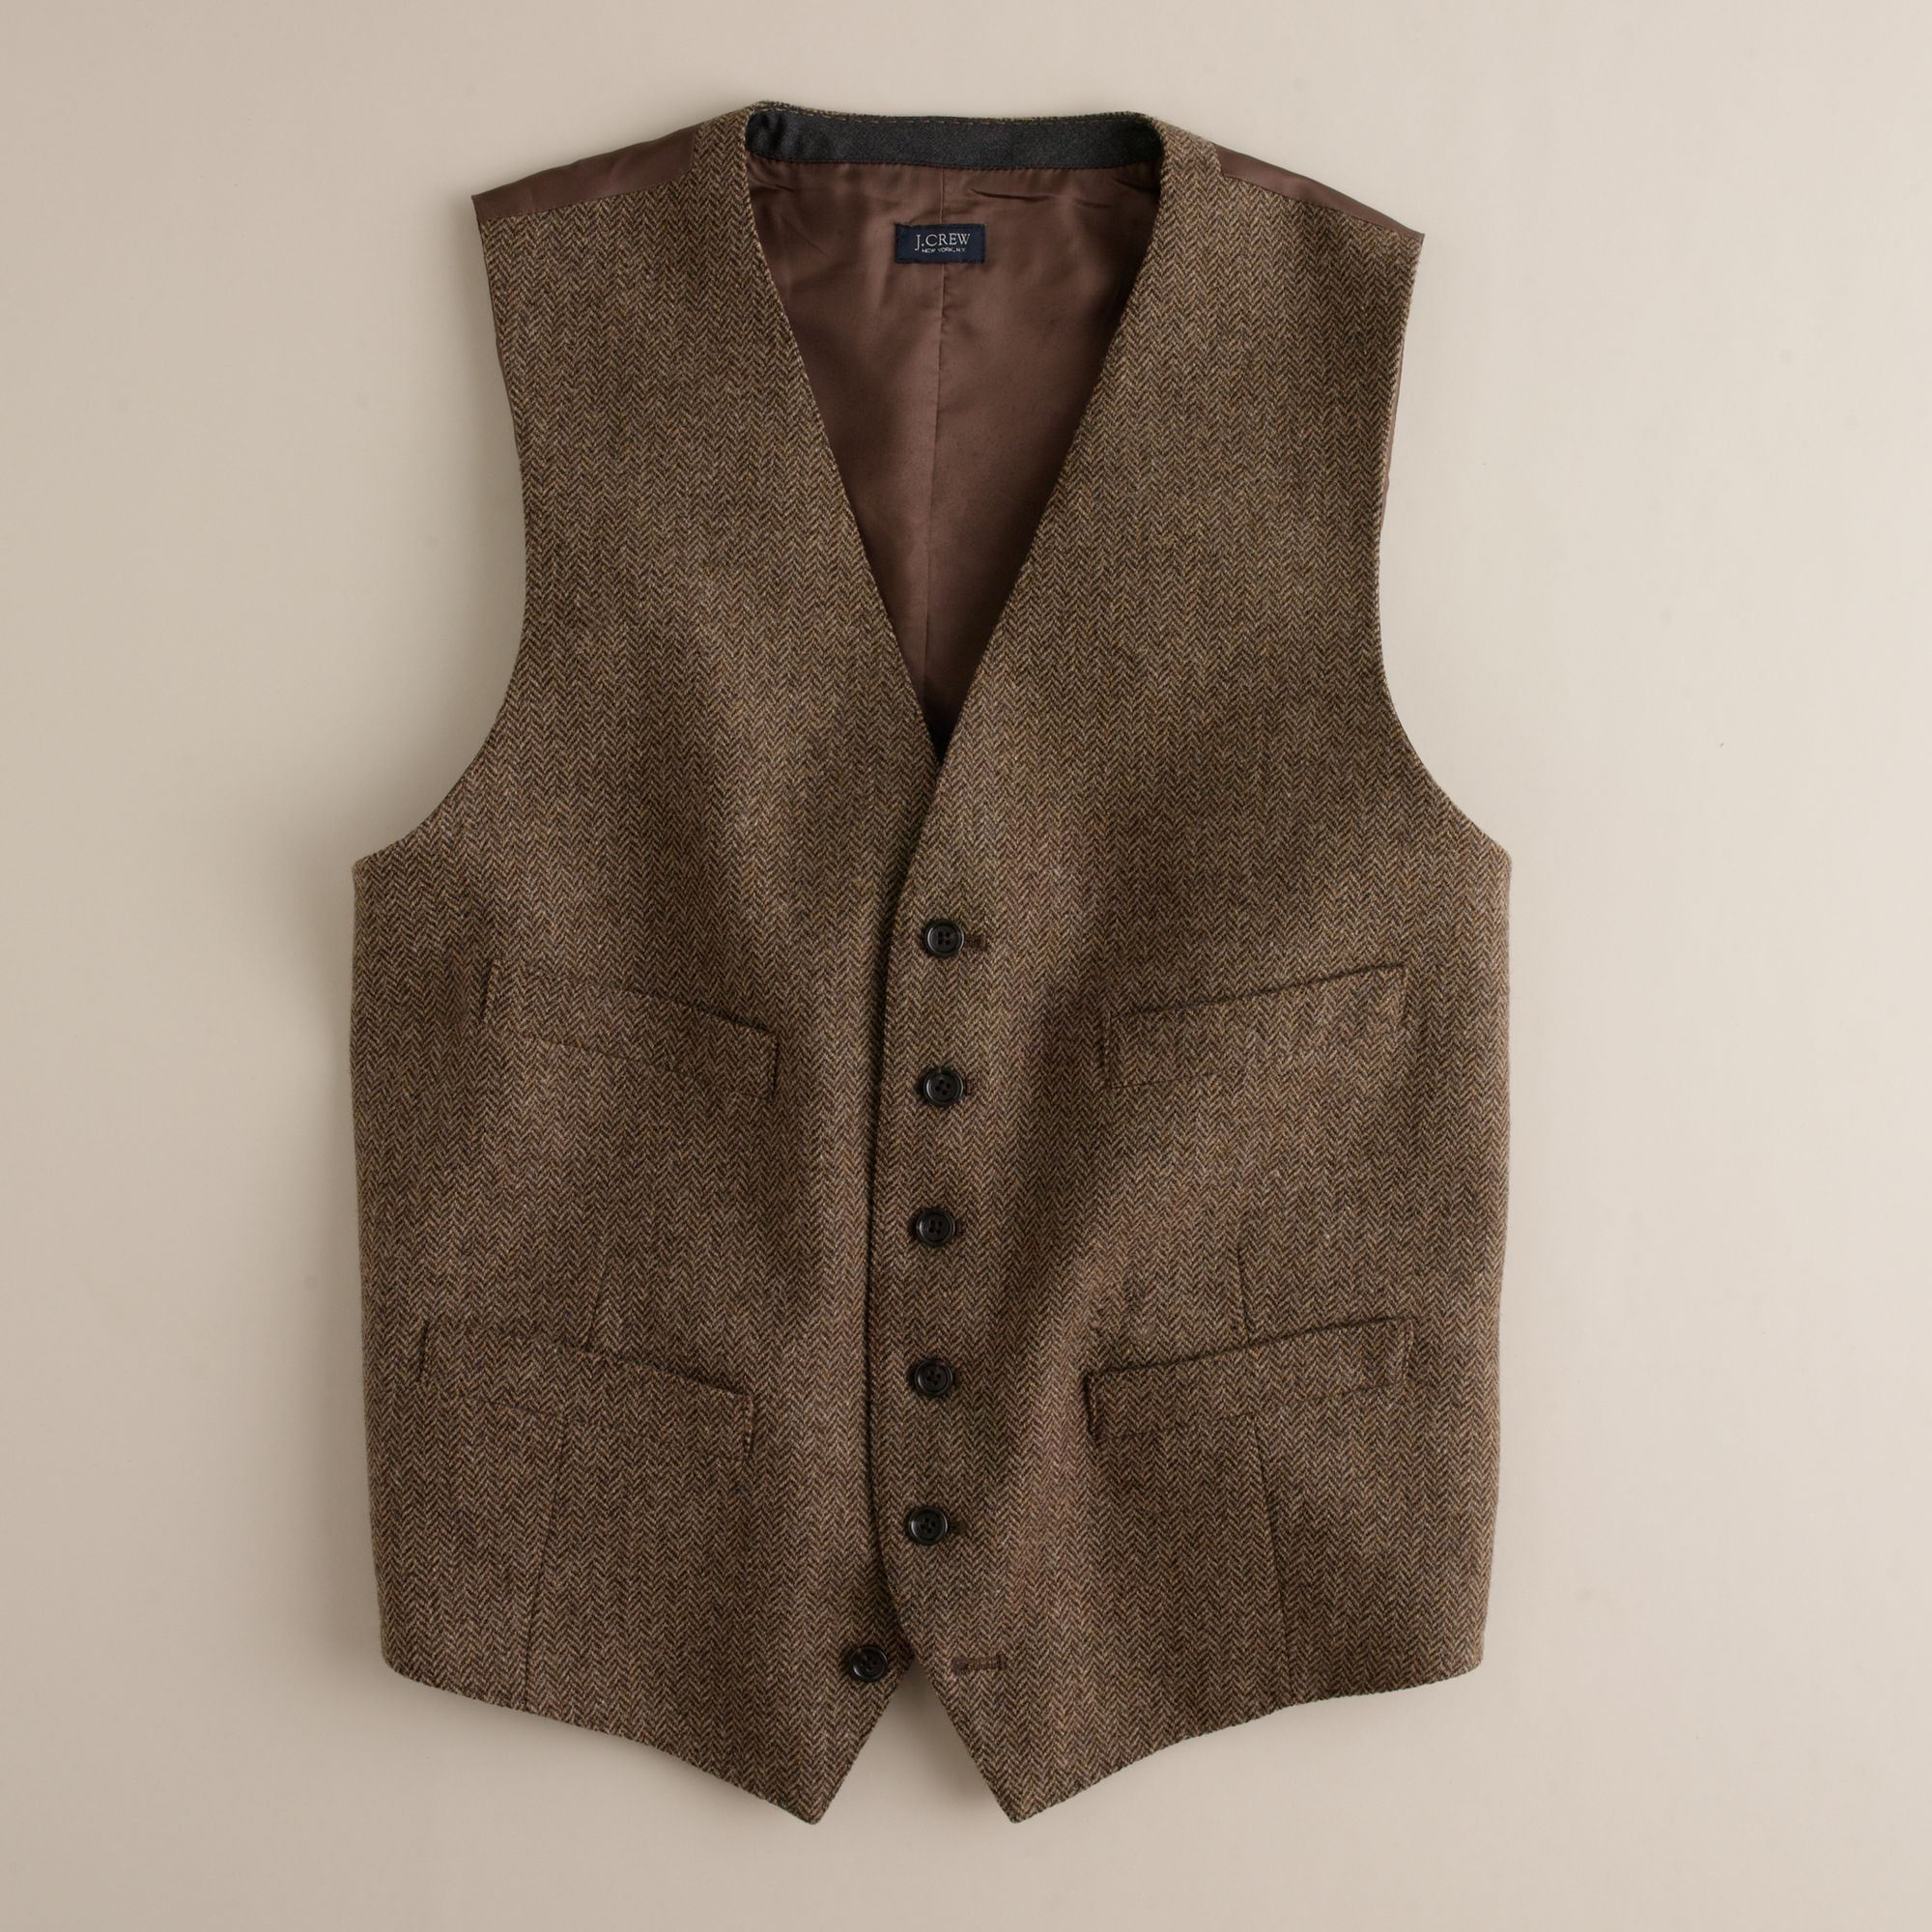 J.crew Harvest Herringbone Vest in Brown for Men